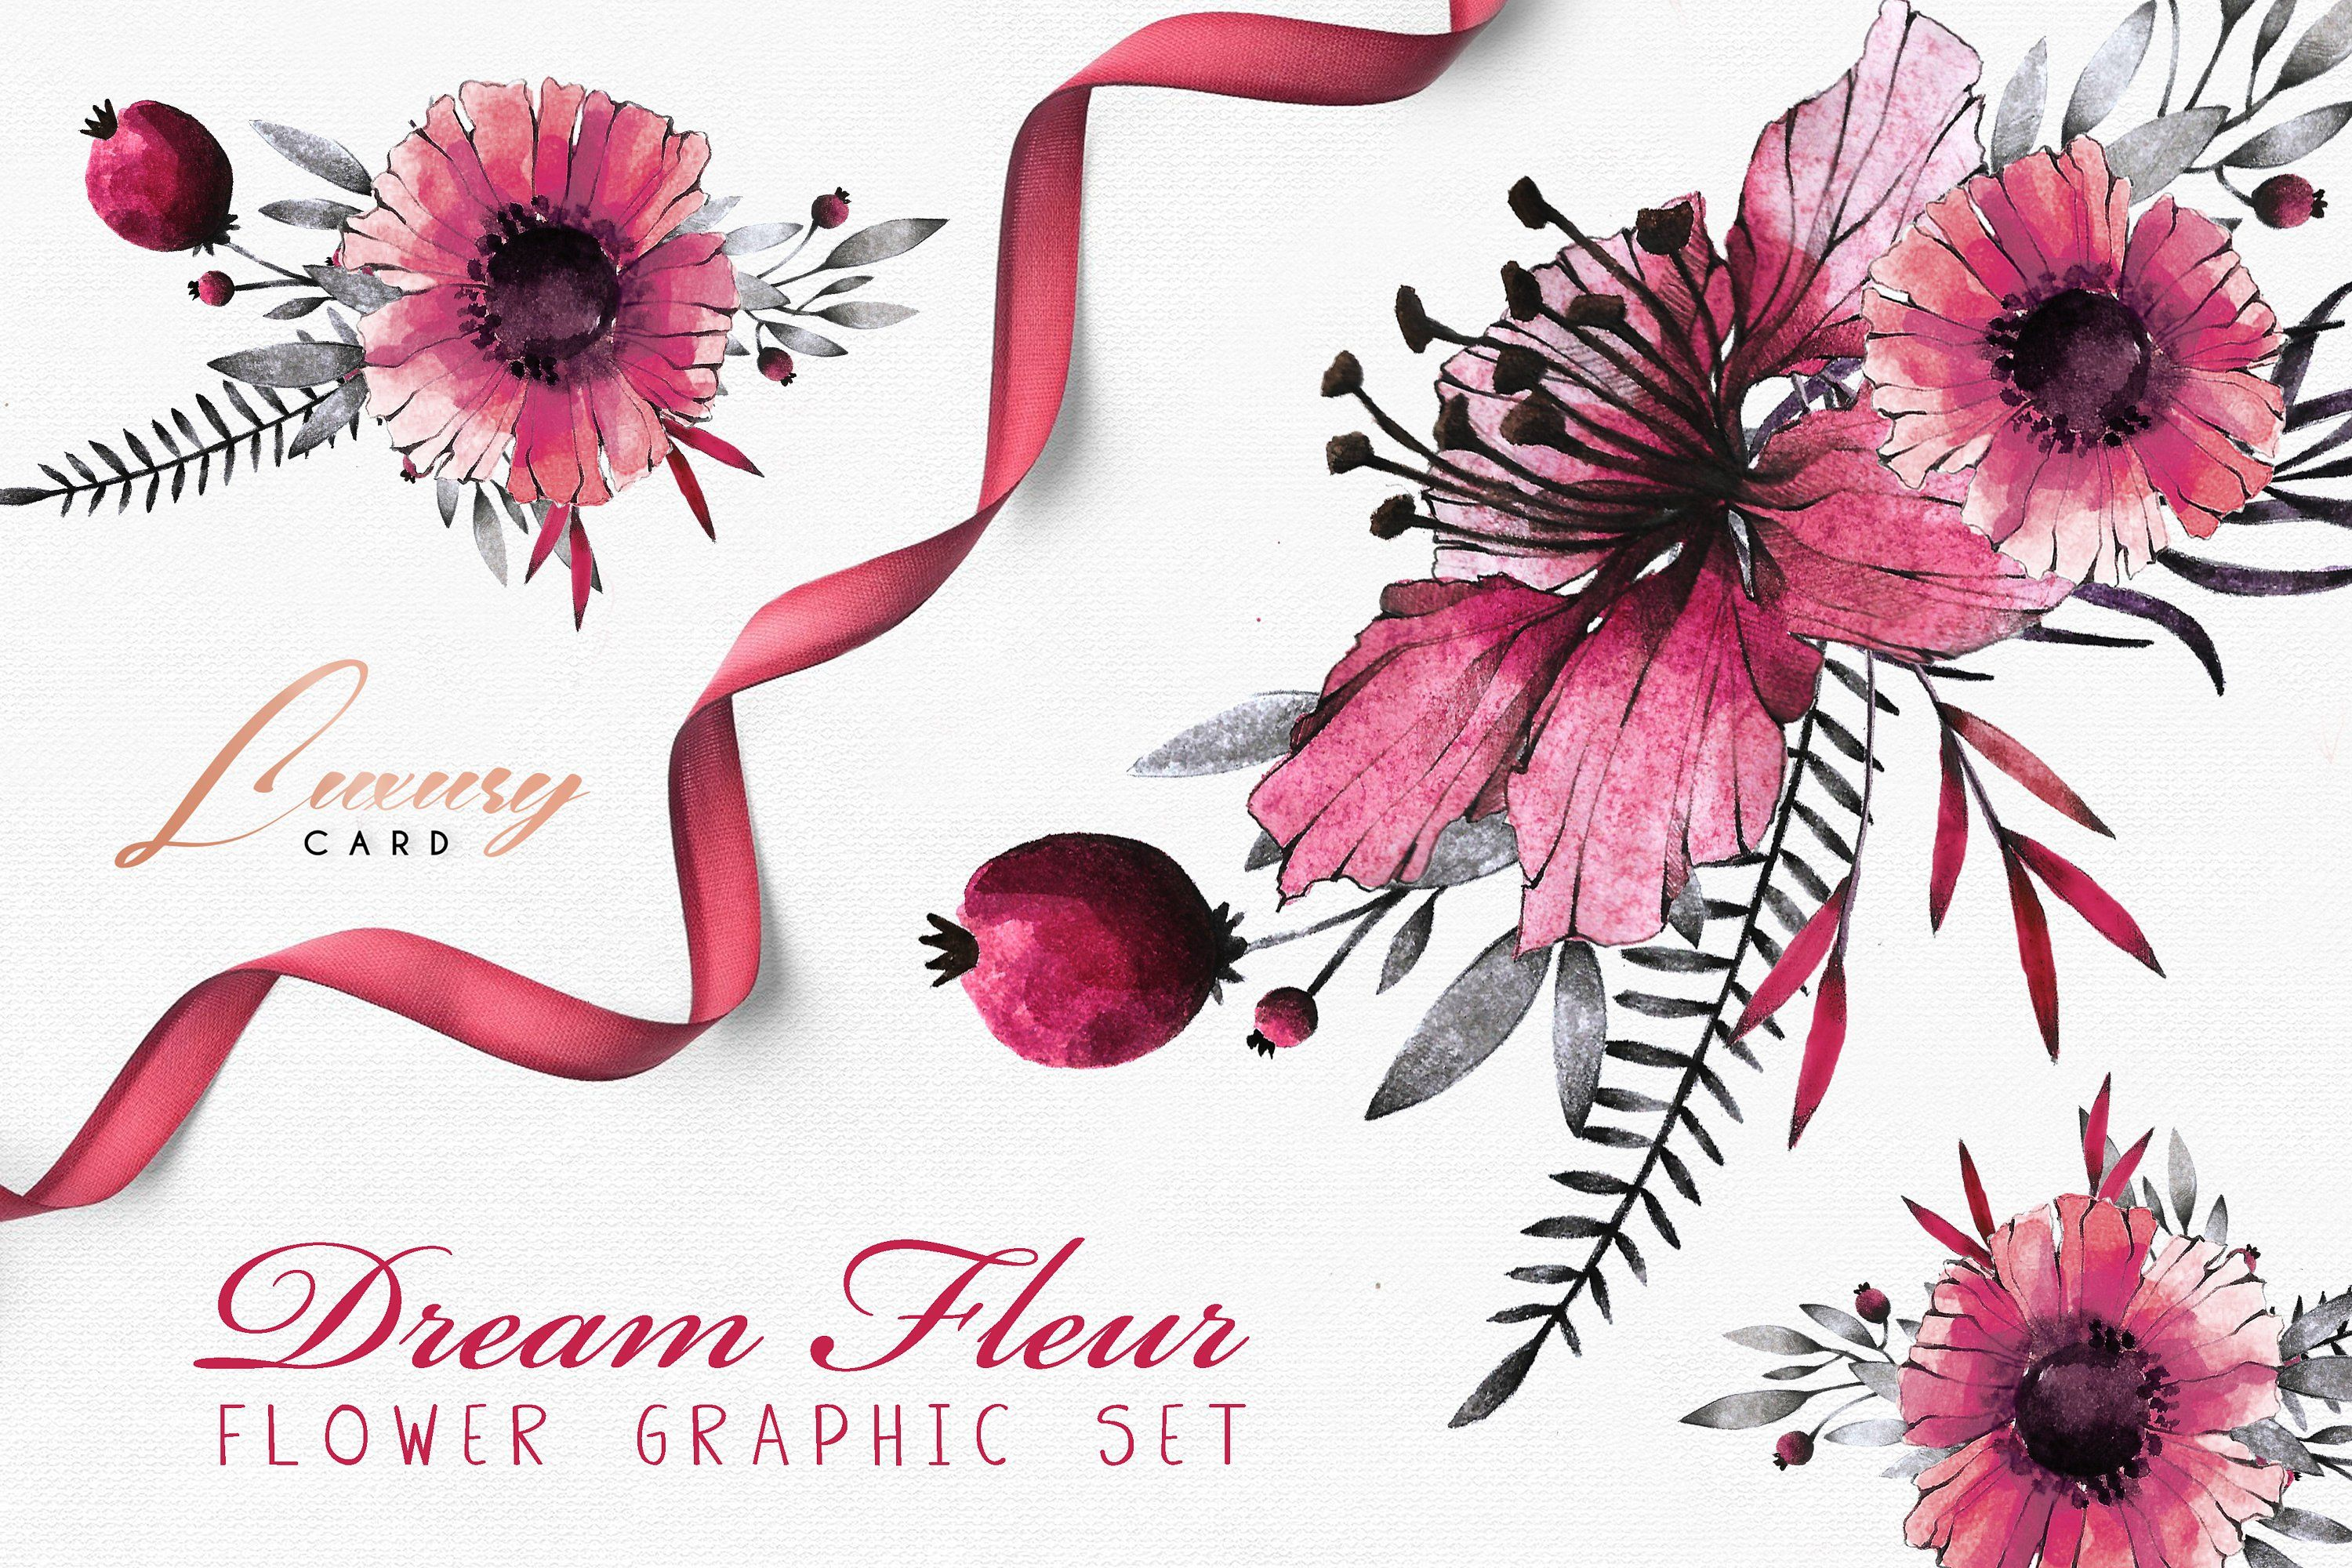 Dream Fleur Watercolor Set Hand Painted Watercolor Flowers